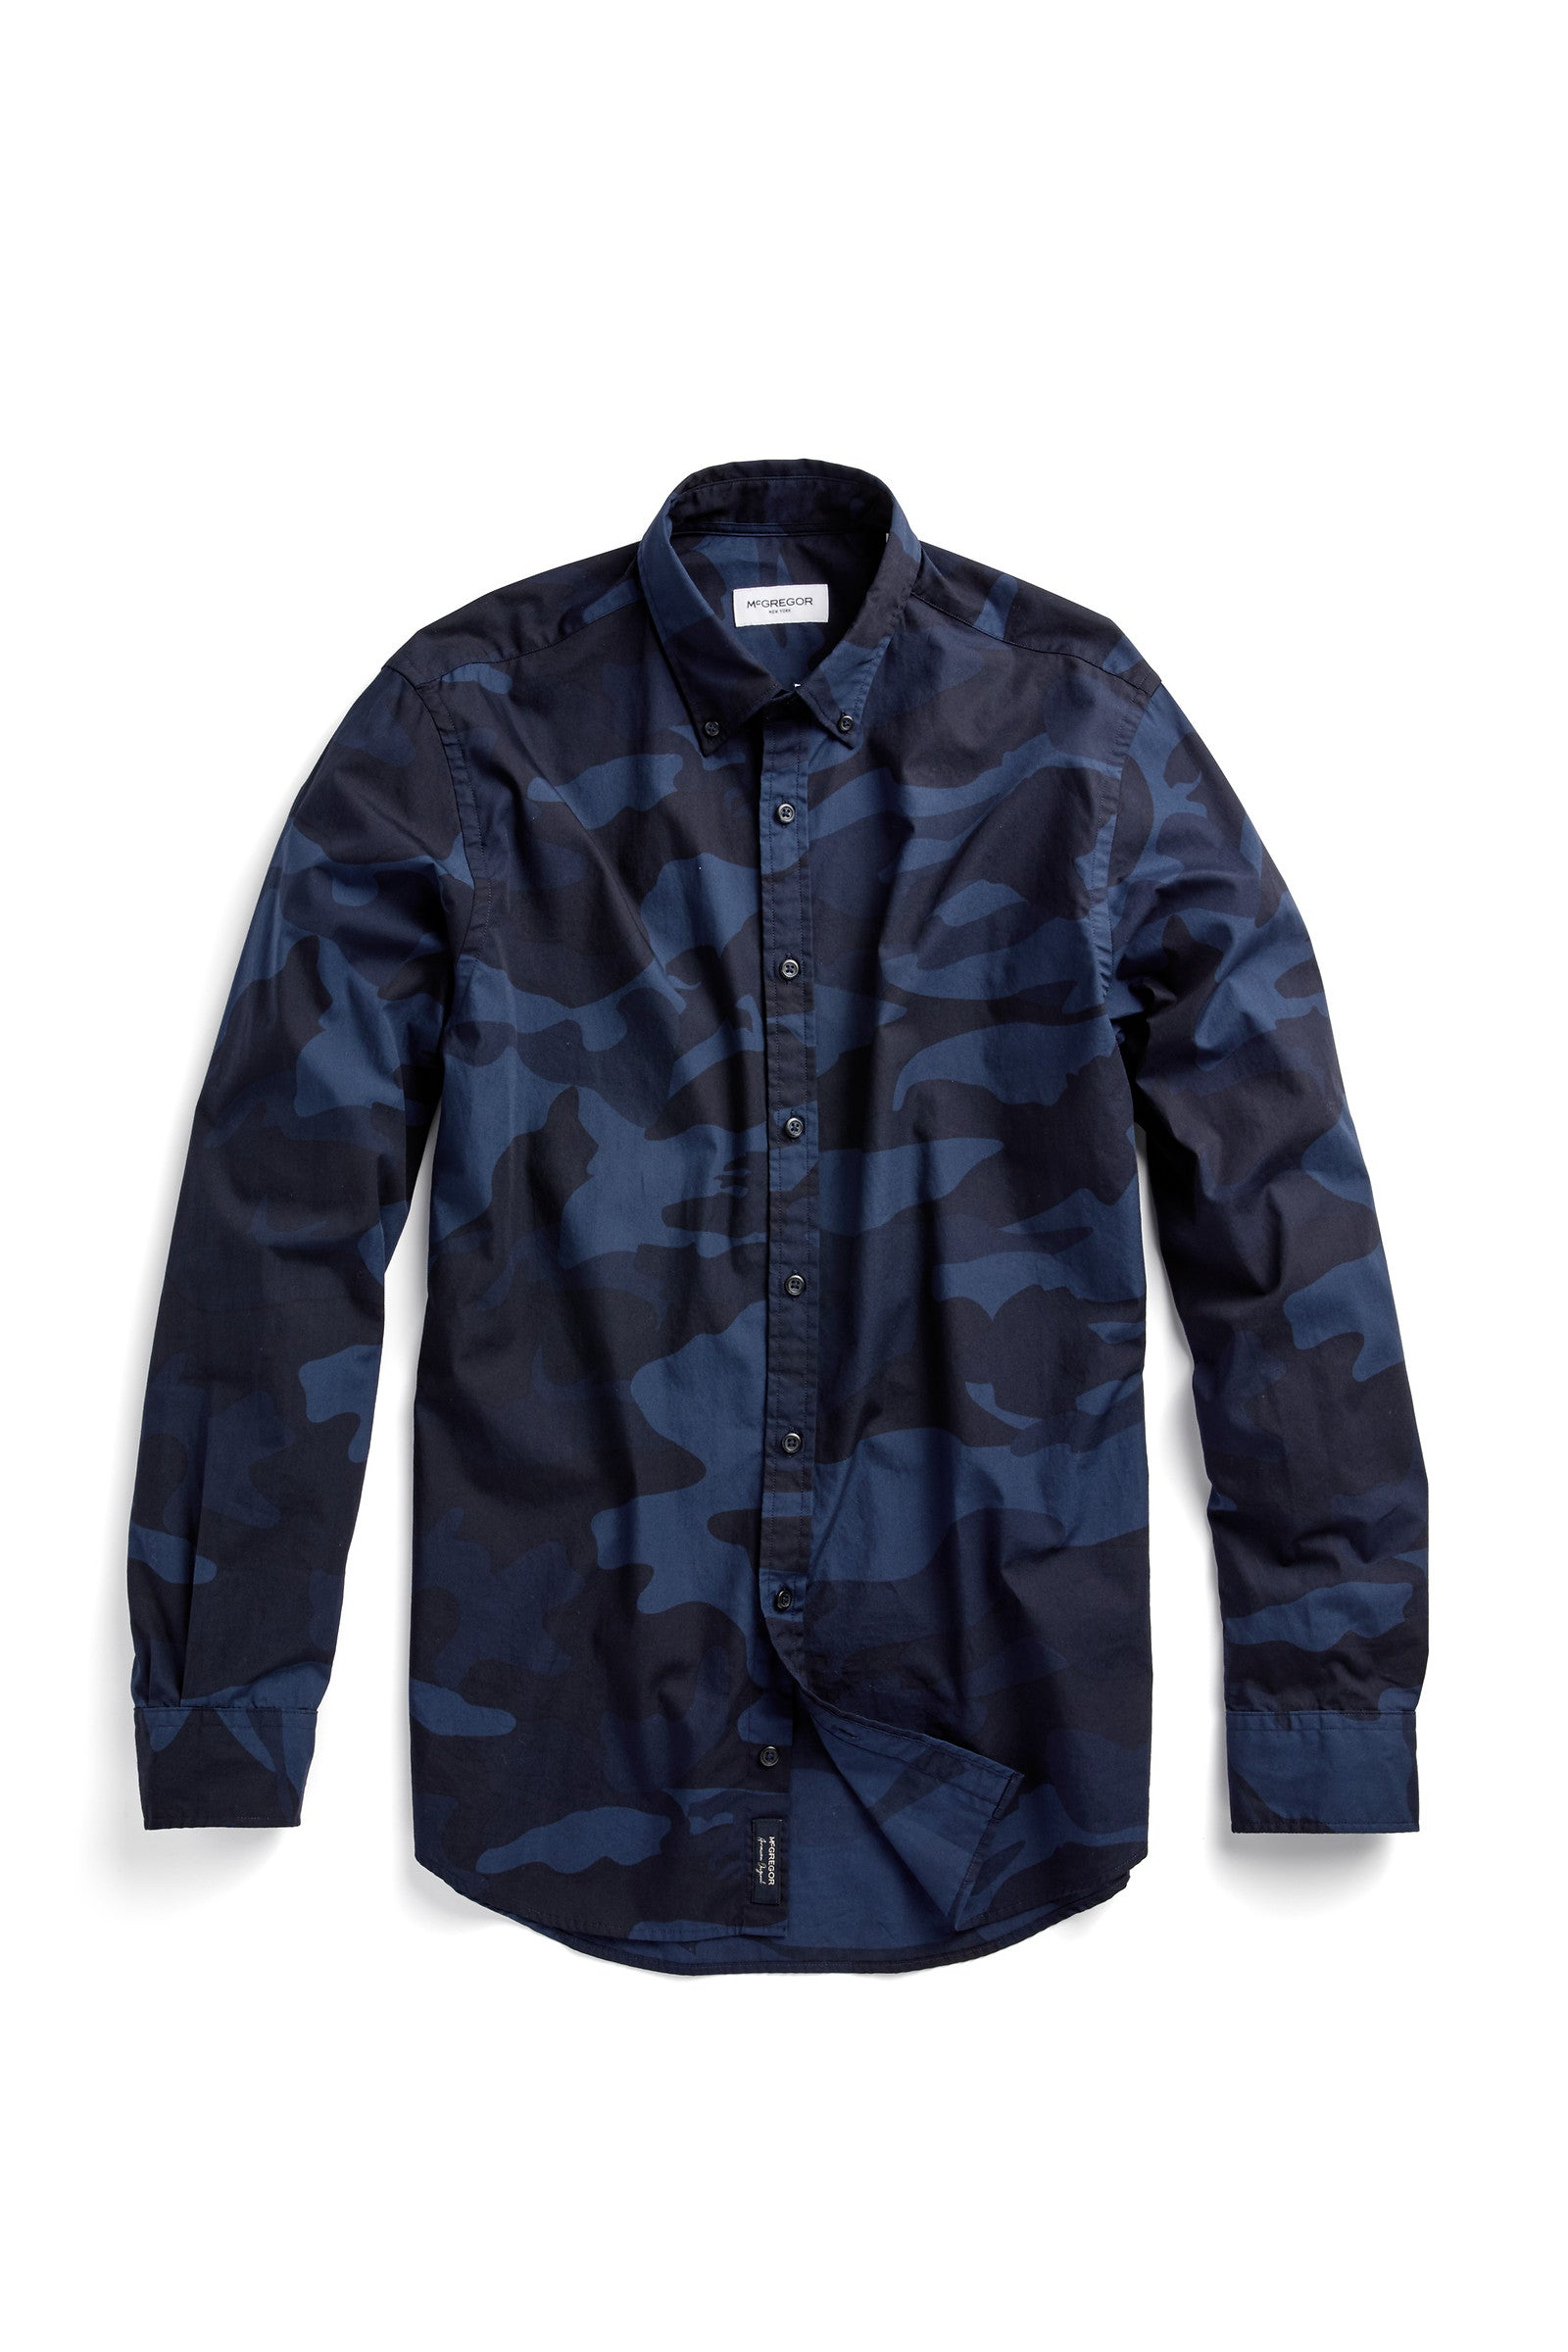 Cotton Shirt in Camouflage Print Regular Fit